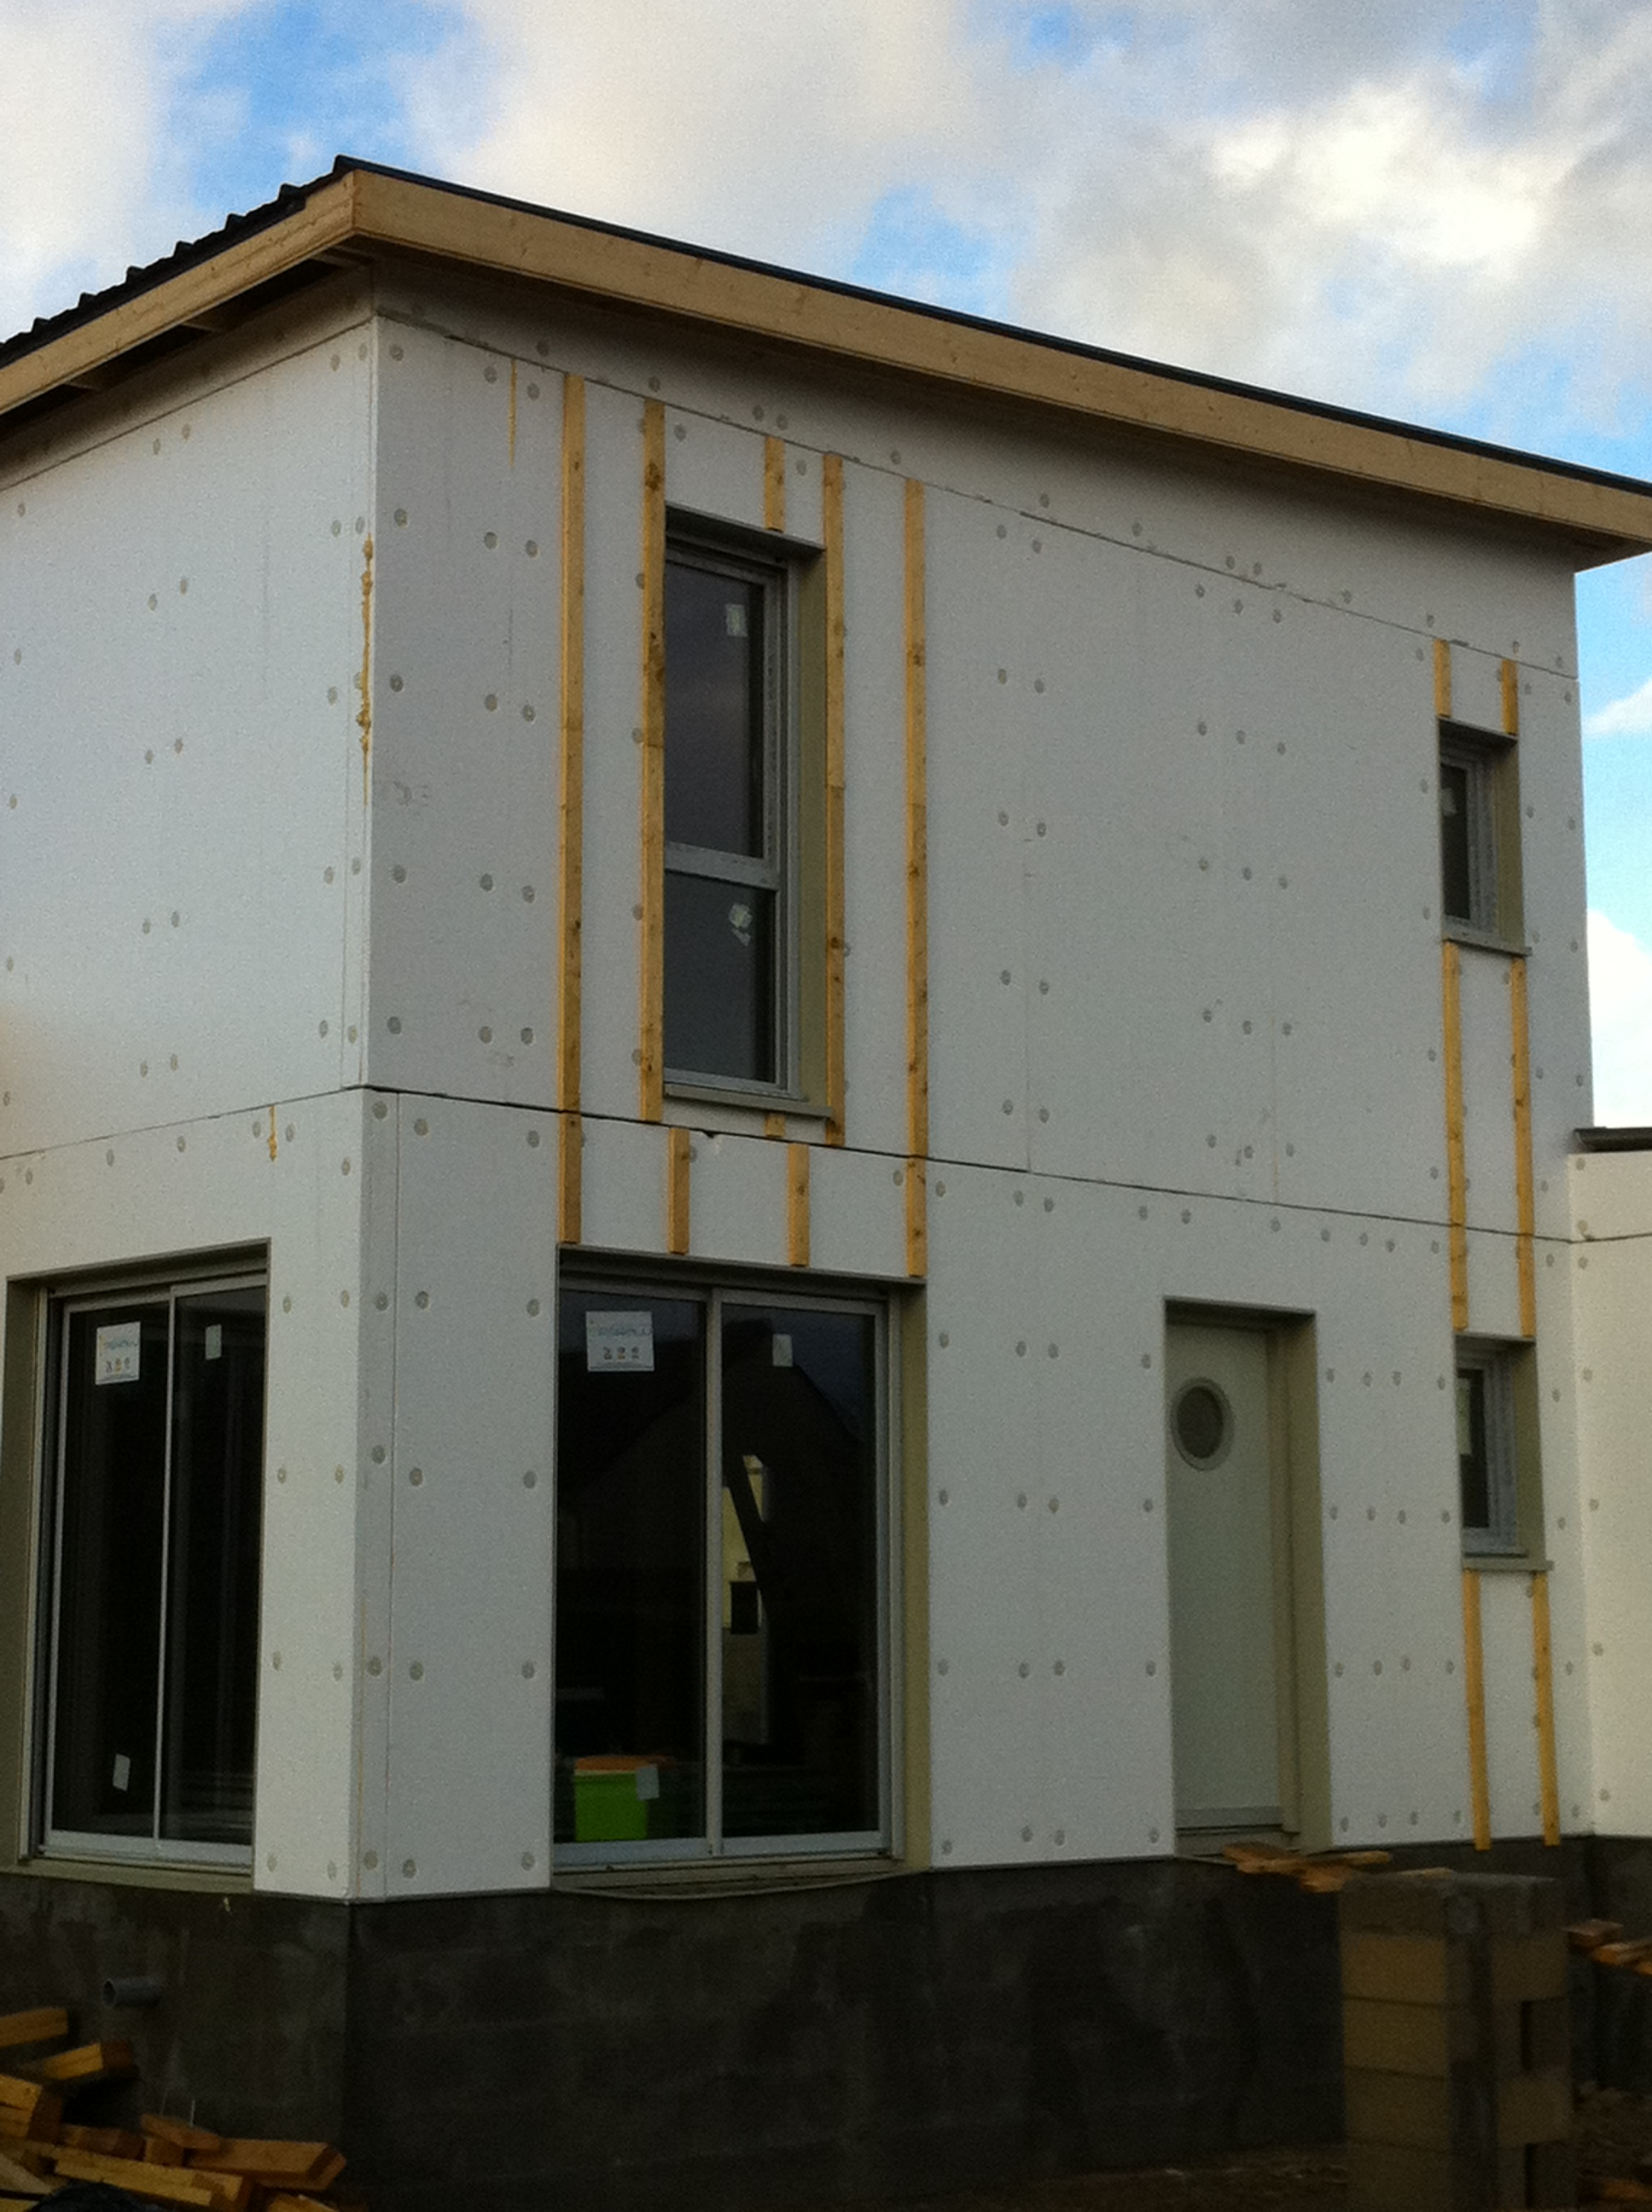 Cout construction maison natilia for Cout construction maison 80m2